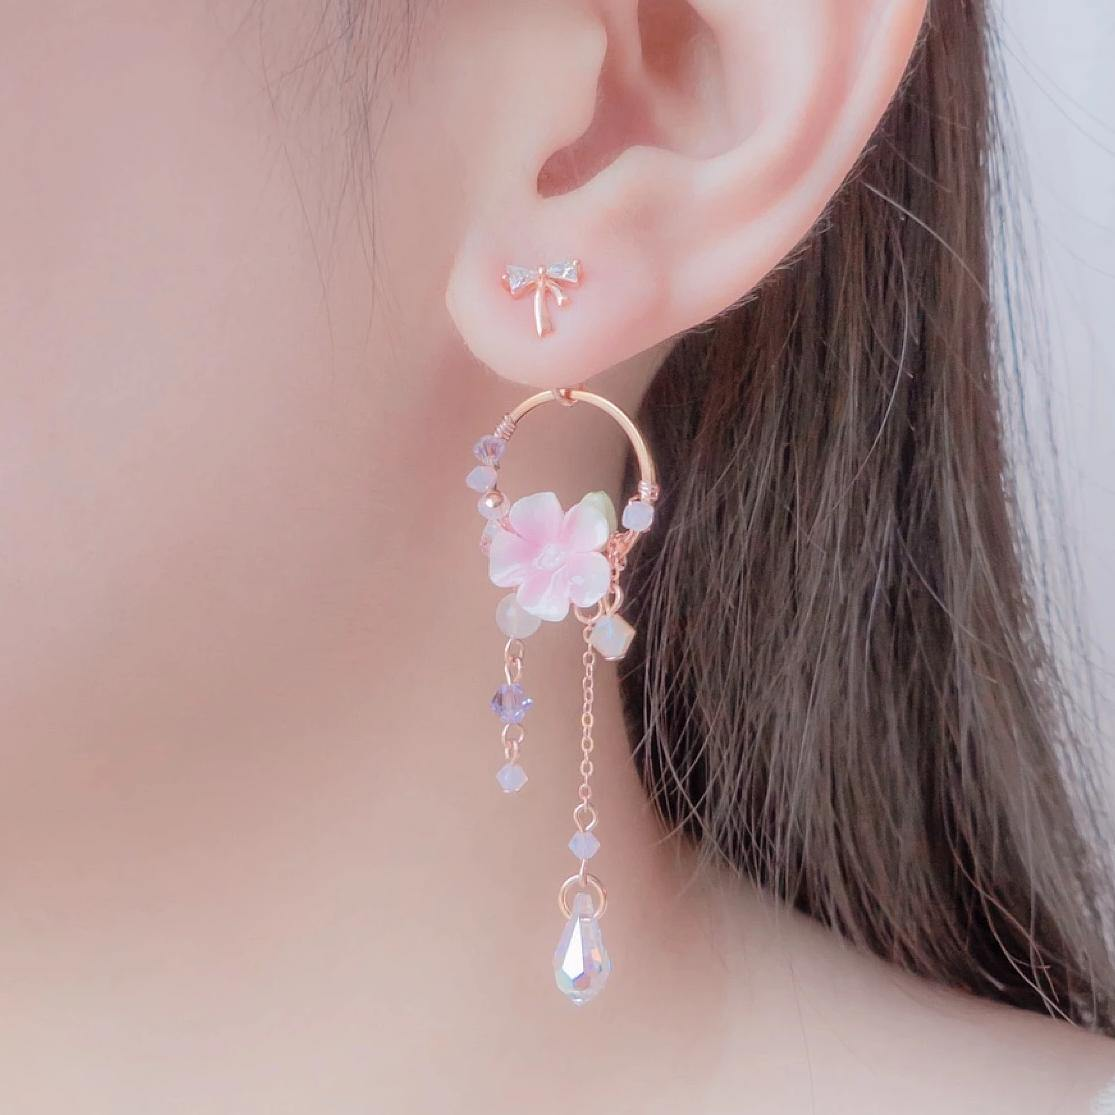 #8 ZODIAC Virgo Violet Bloom Dream Catcher Rosegold-plated 925 Silver Earrings